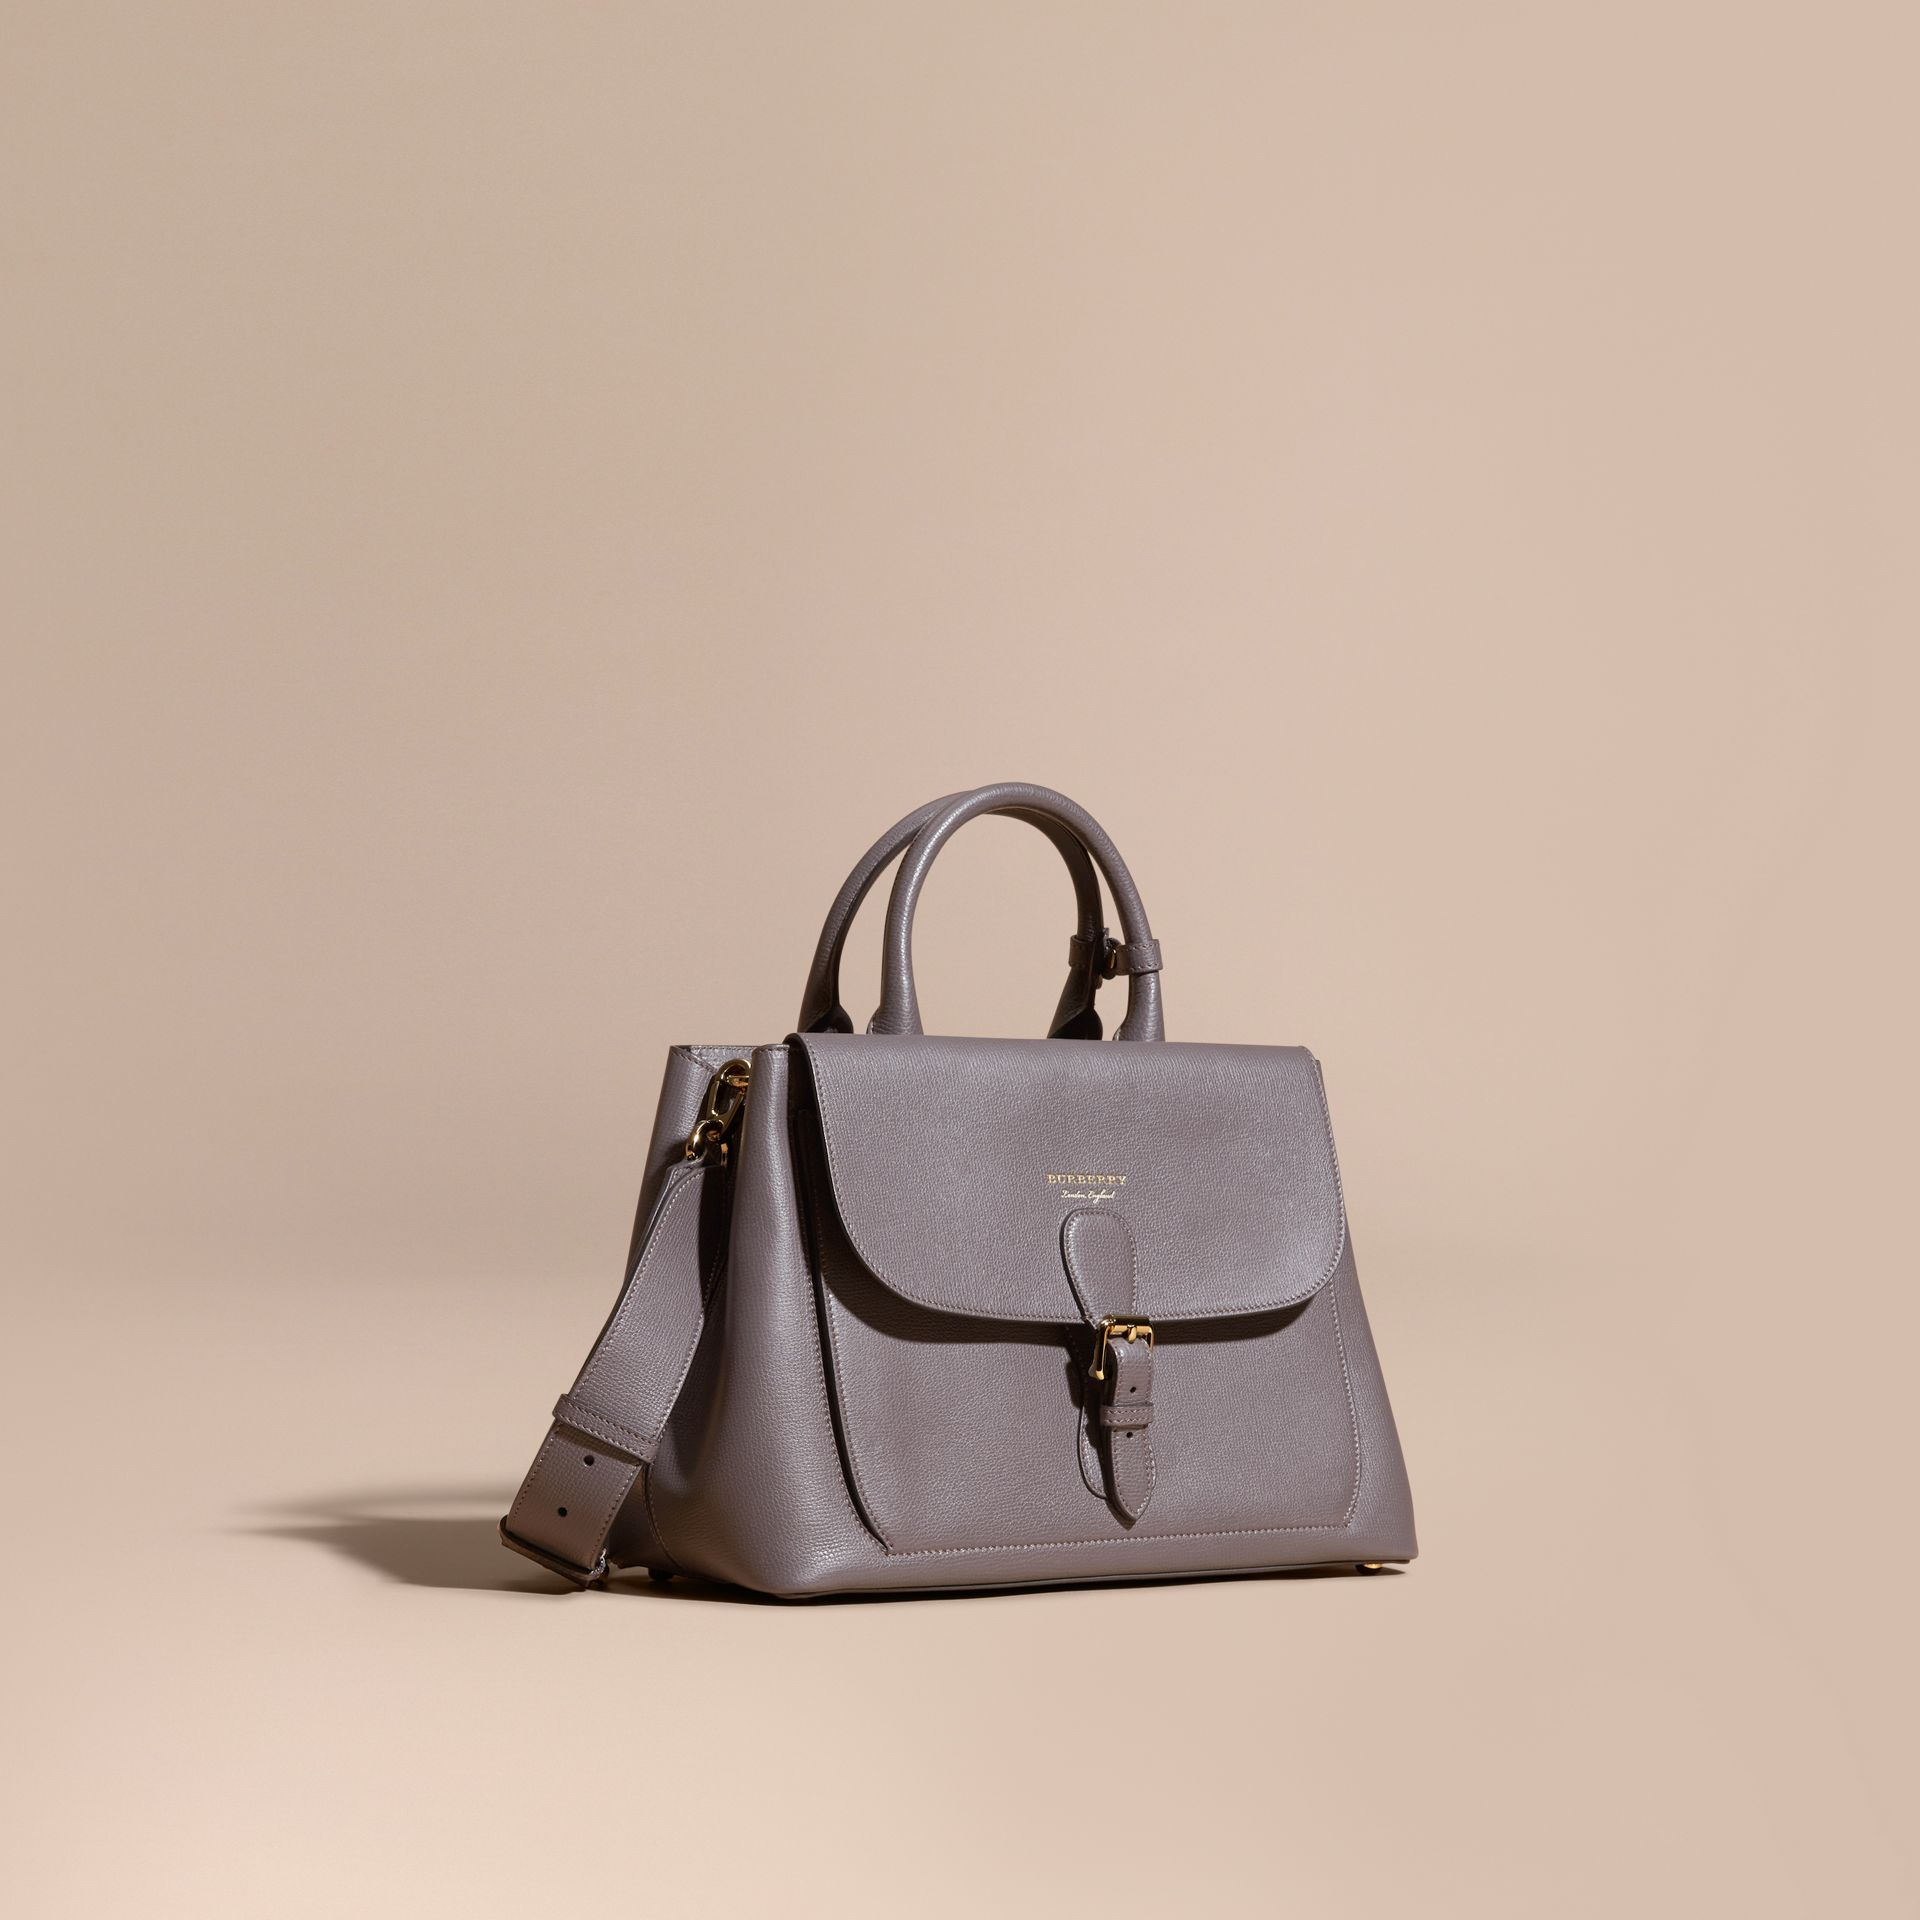 Sepia grey The Medium Saddle Bag in Grainy Bonded Leather Sepia Grey - gallery image 1